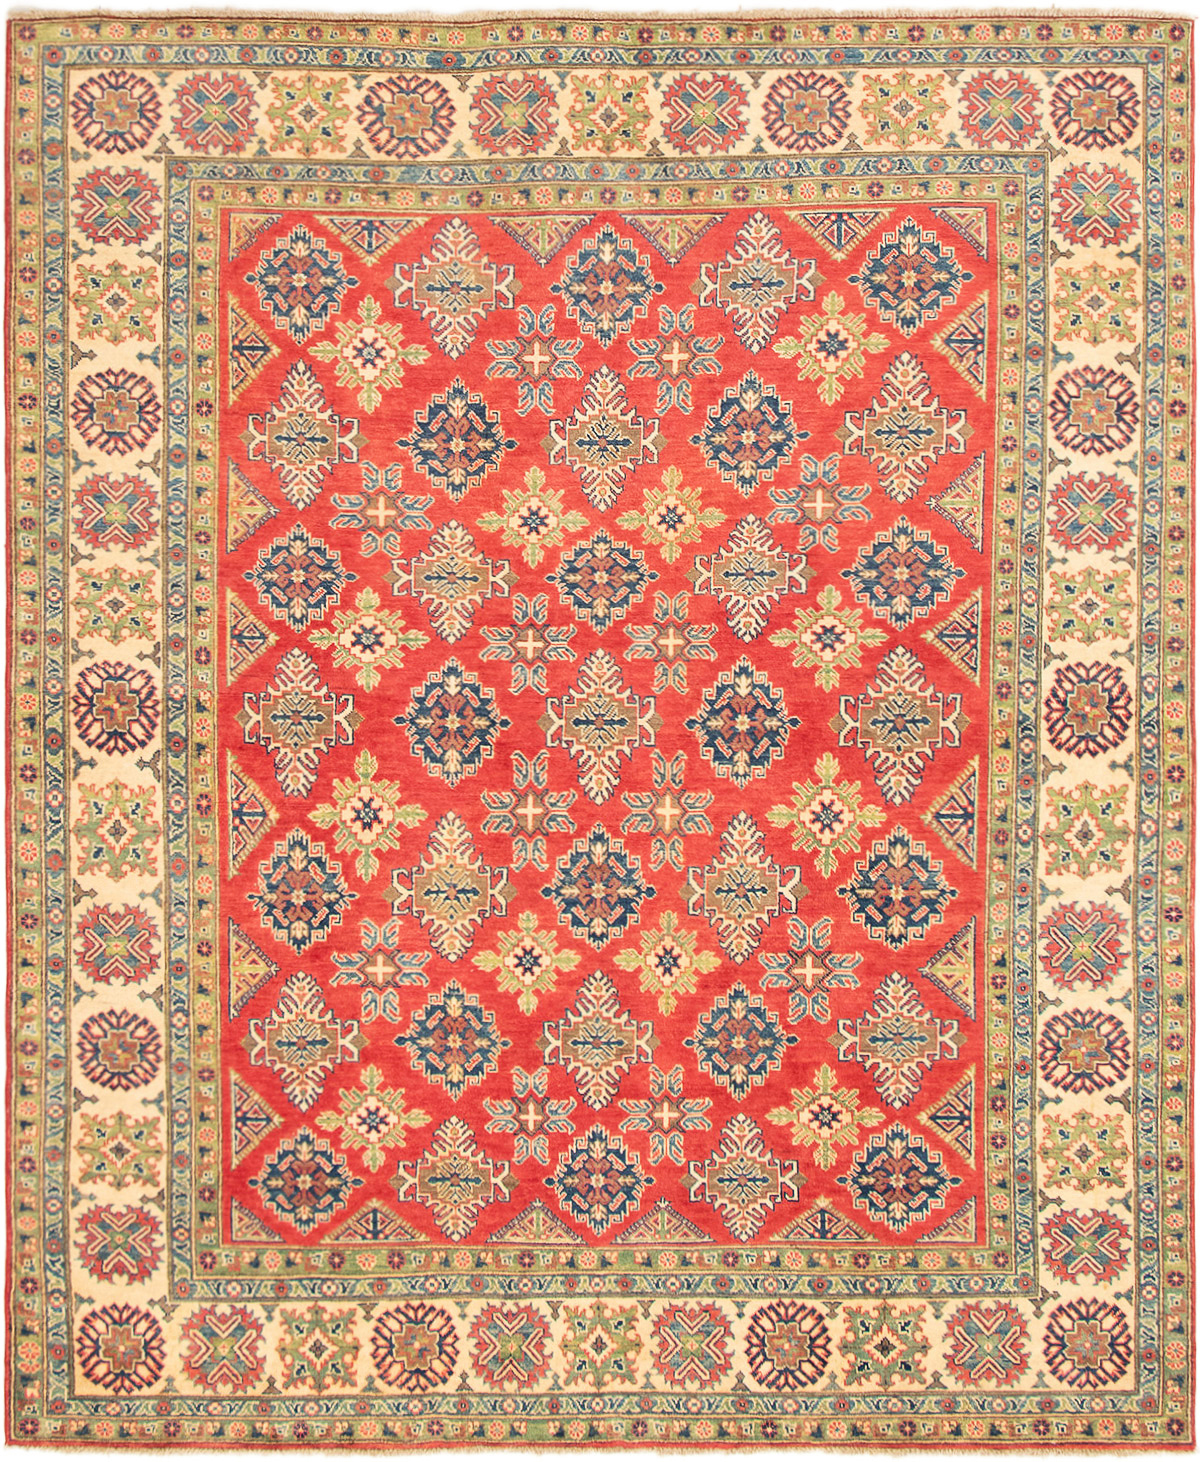 """Hand-knotted Finest Gazni Red Wool Rug 8'0"""" x 9'8"""" Size: 8'0"""" x 9'8"""""""